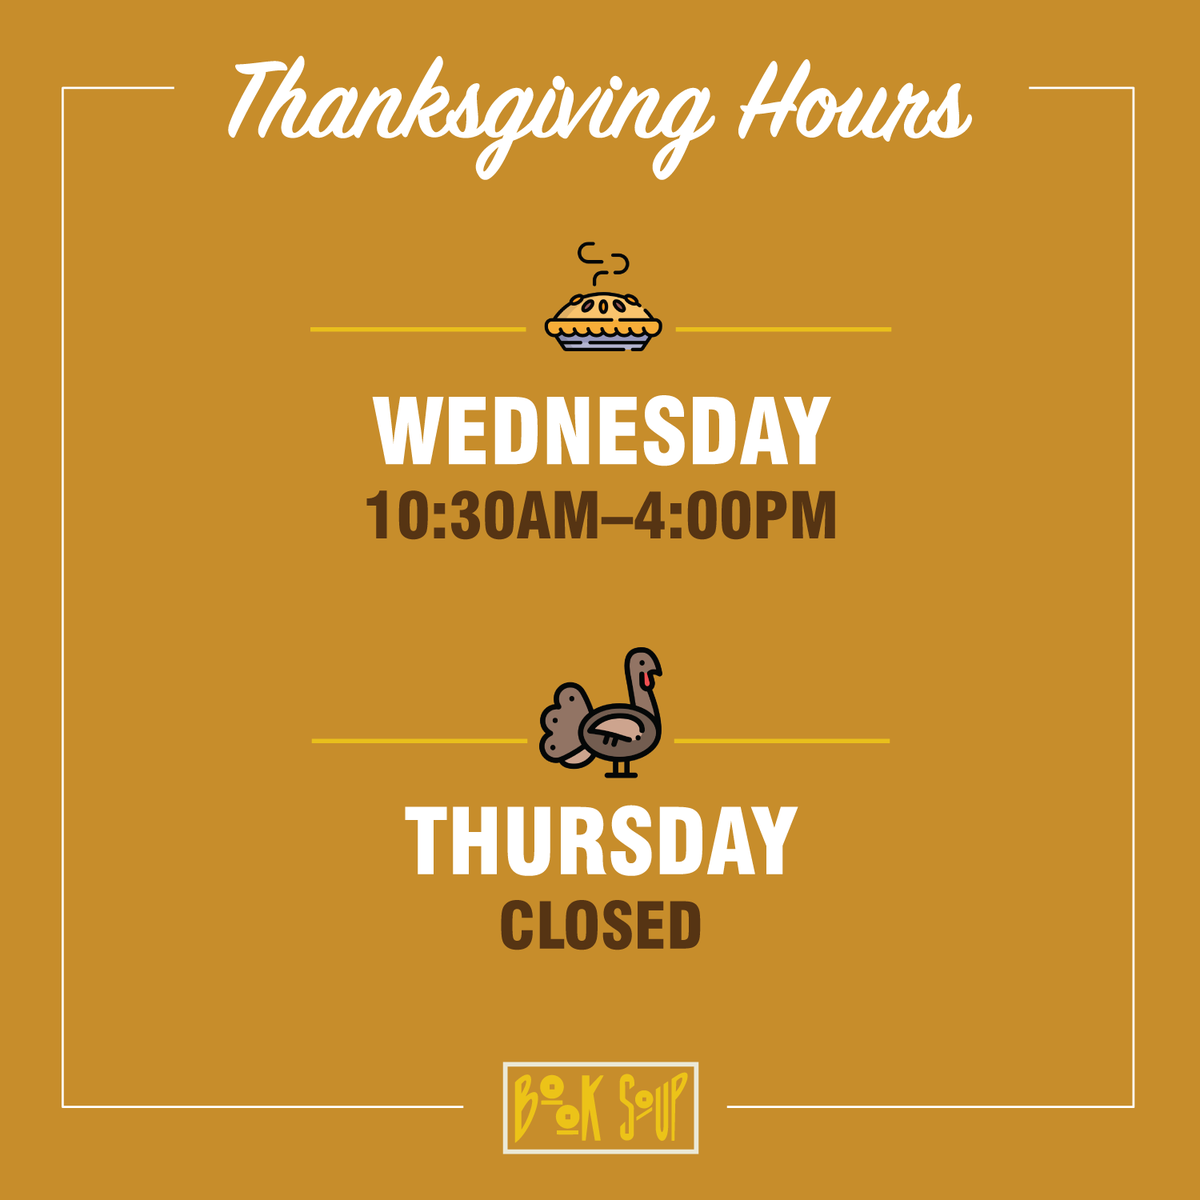 We close at 4PM today & will be closed tomorrow so that we can Zoomsgiving with friends & family BUT as you know, we are always open online.  Stay safe everyone!